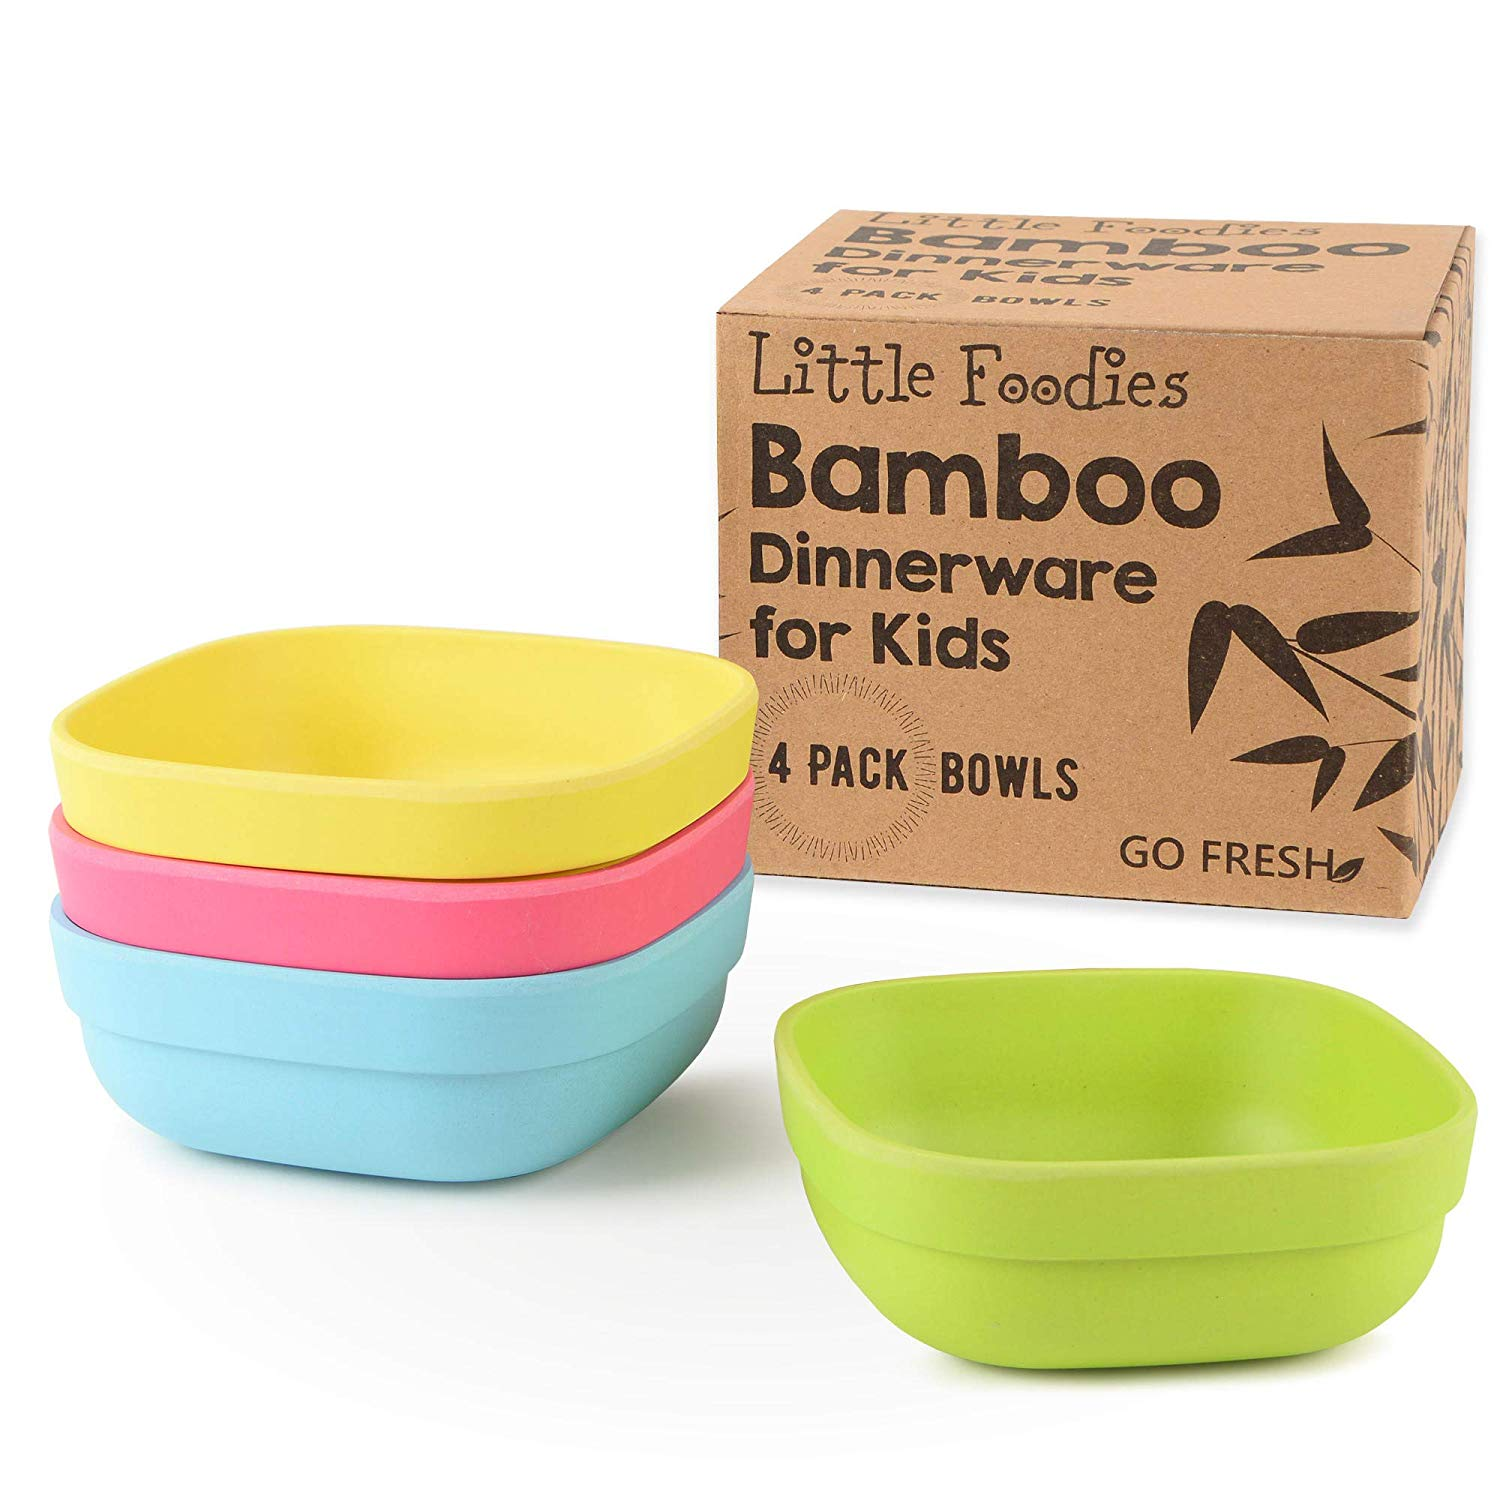 GO FRESH Bamboo Kids Bowls, Set of 4 kids bamboo dinnerware for everyday use, Eco-friendly kids bamboo bowls, BPA Free, Dishwasher safe and Stackable